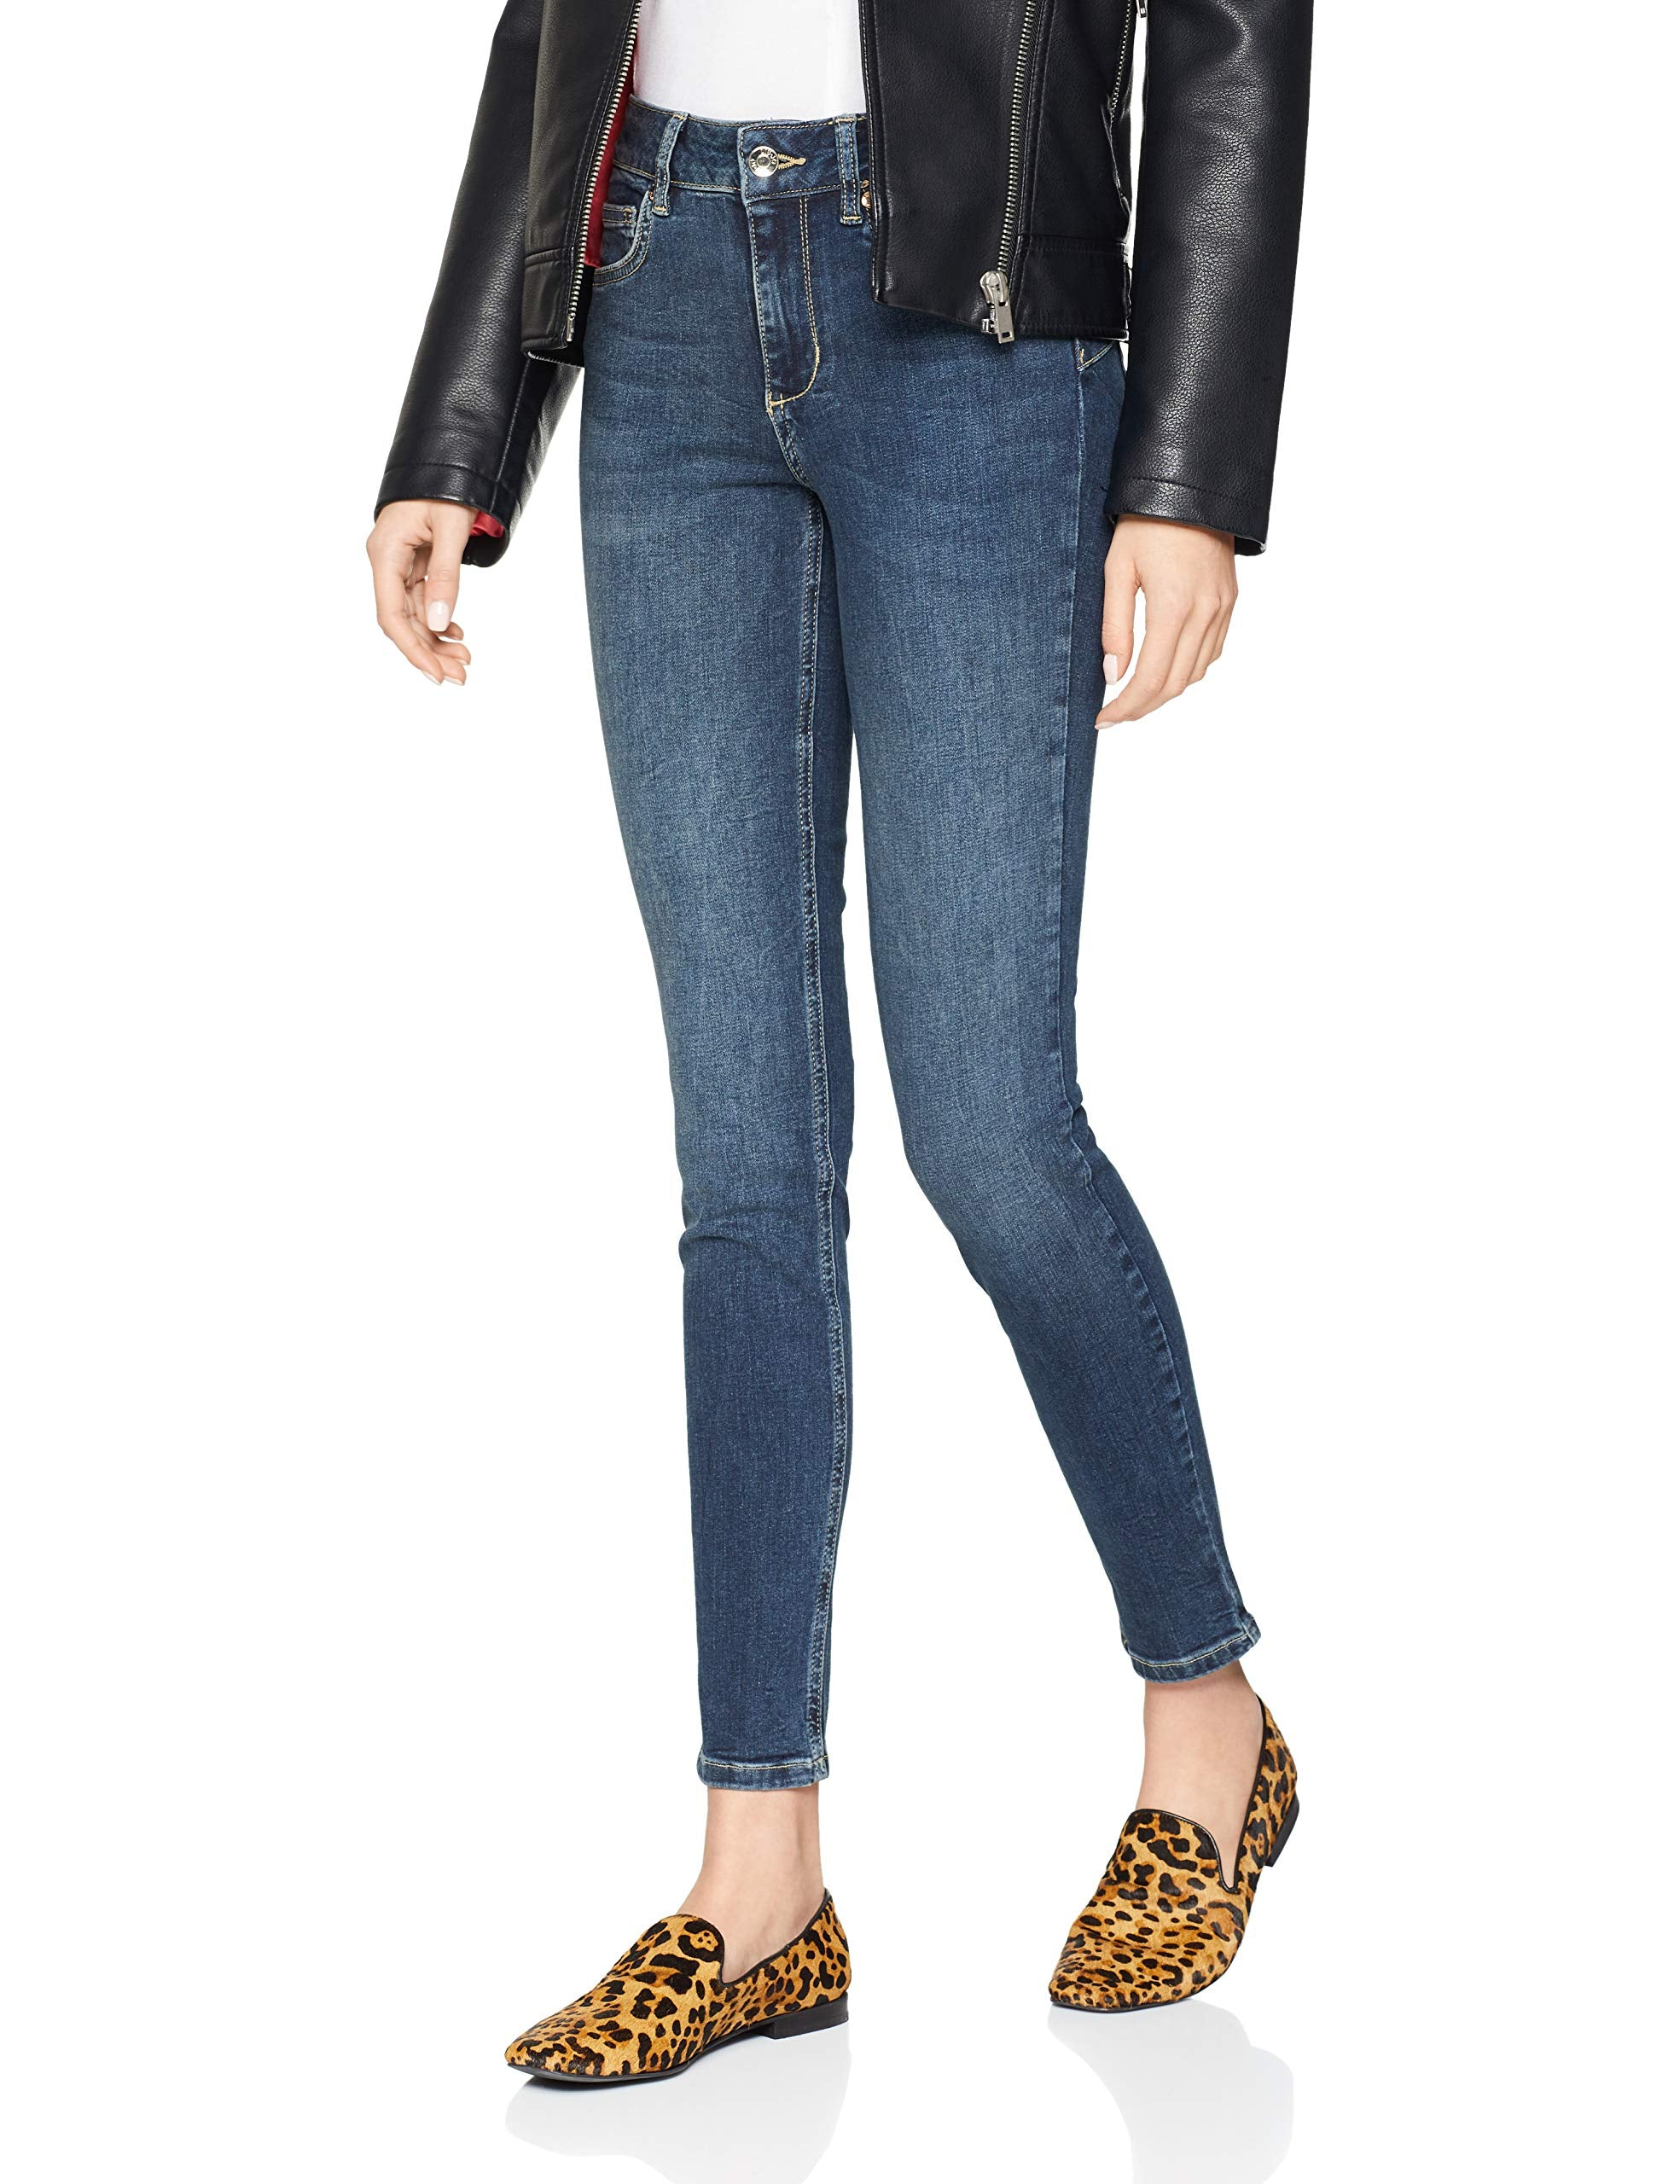 Liu Jo Bottom Up Divine Jeans Skinny, Blu (den.Blue Poppy Wash 77614), 31W x 30L Donna Marche Famose